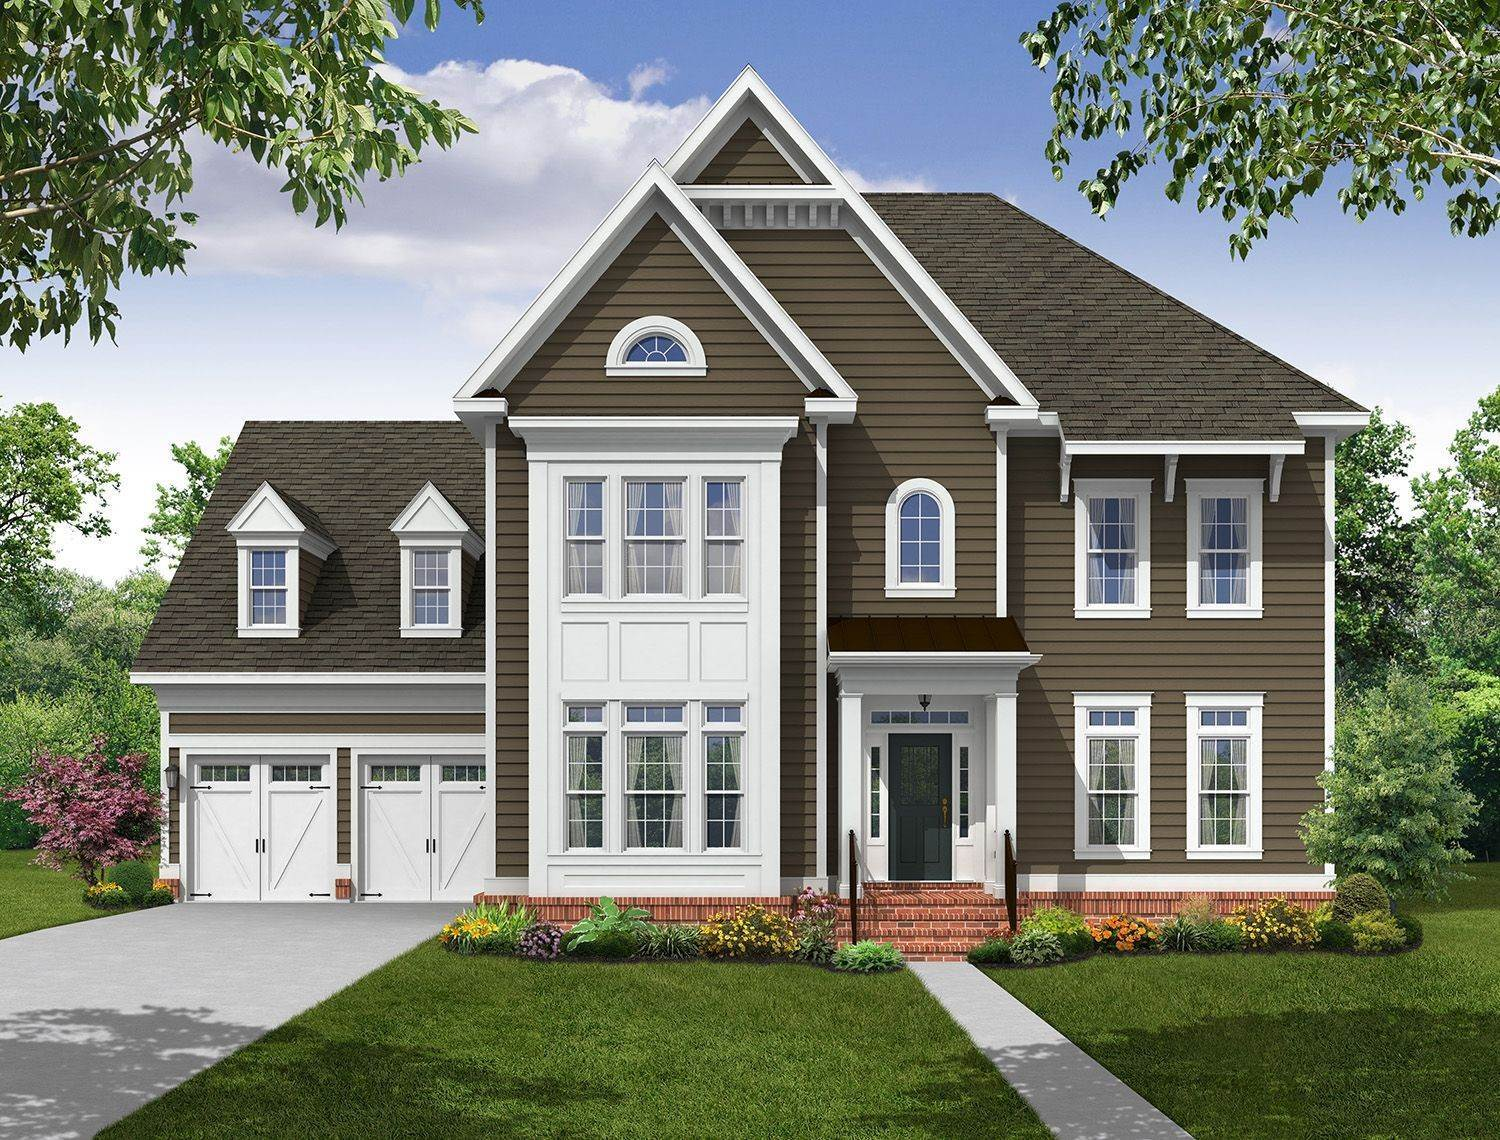 Single Family for Sale at Greenleigh - Georgetown Greenleigh 501 Heritage Street Middle River, Maryland 21220 United States